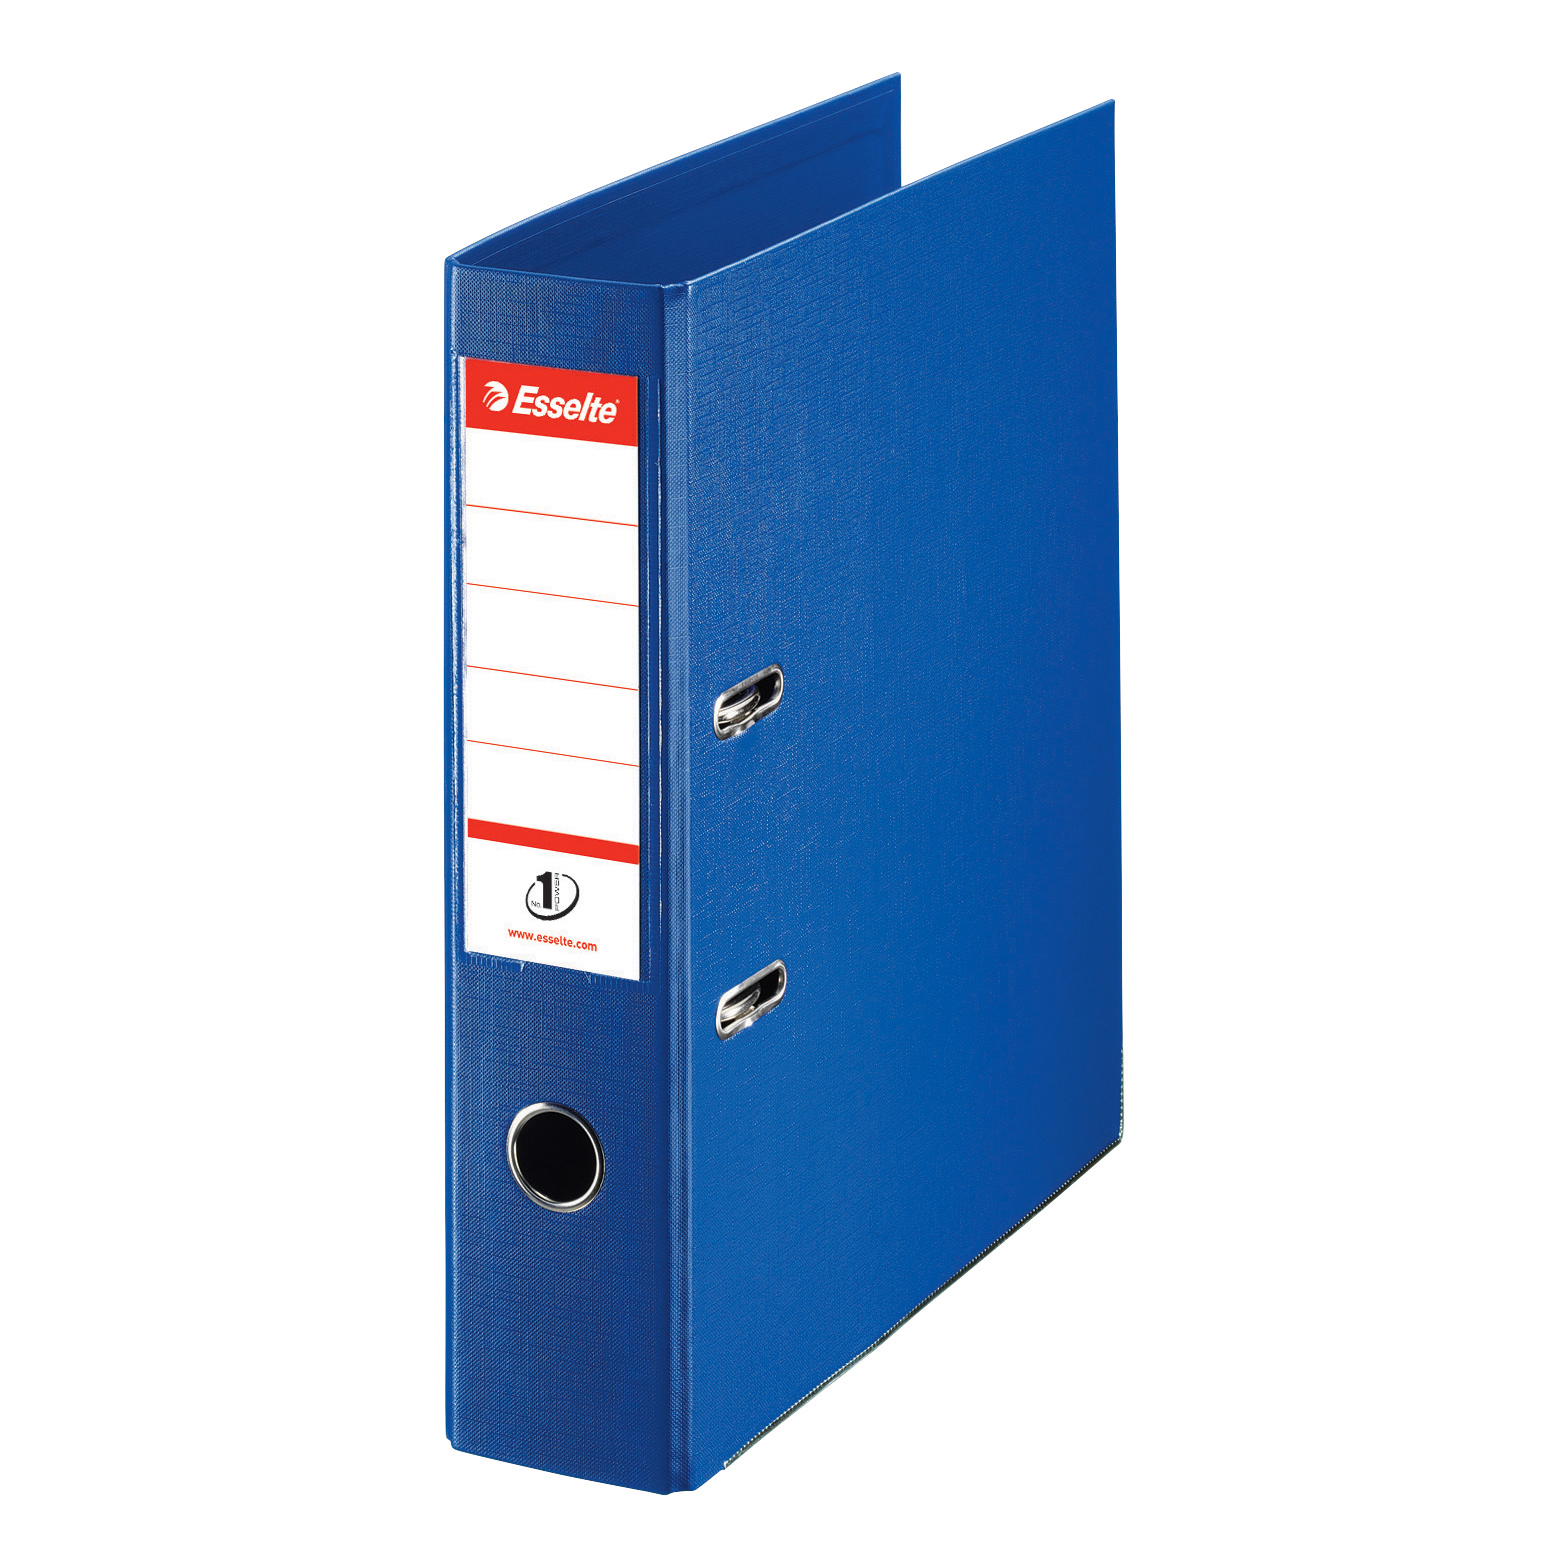 Esselte No. 1 Power Lever Arch File PP Slotted 75mm Spine A4 Blue Ref 811350 [Pack 10]